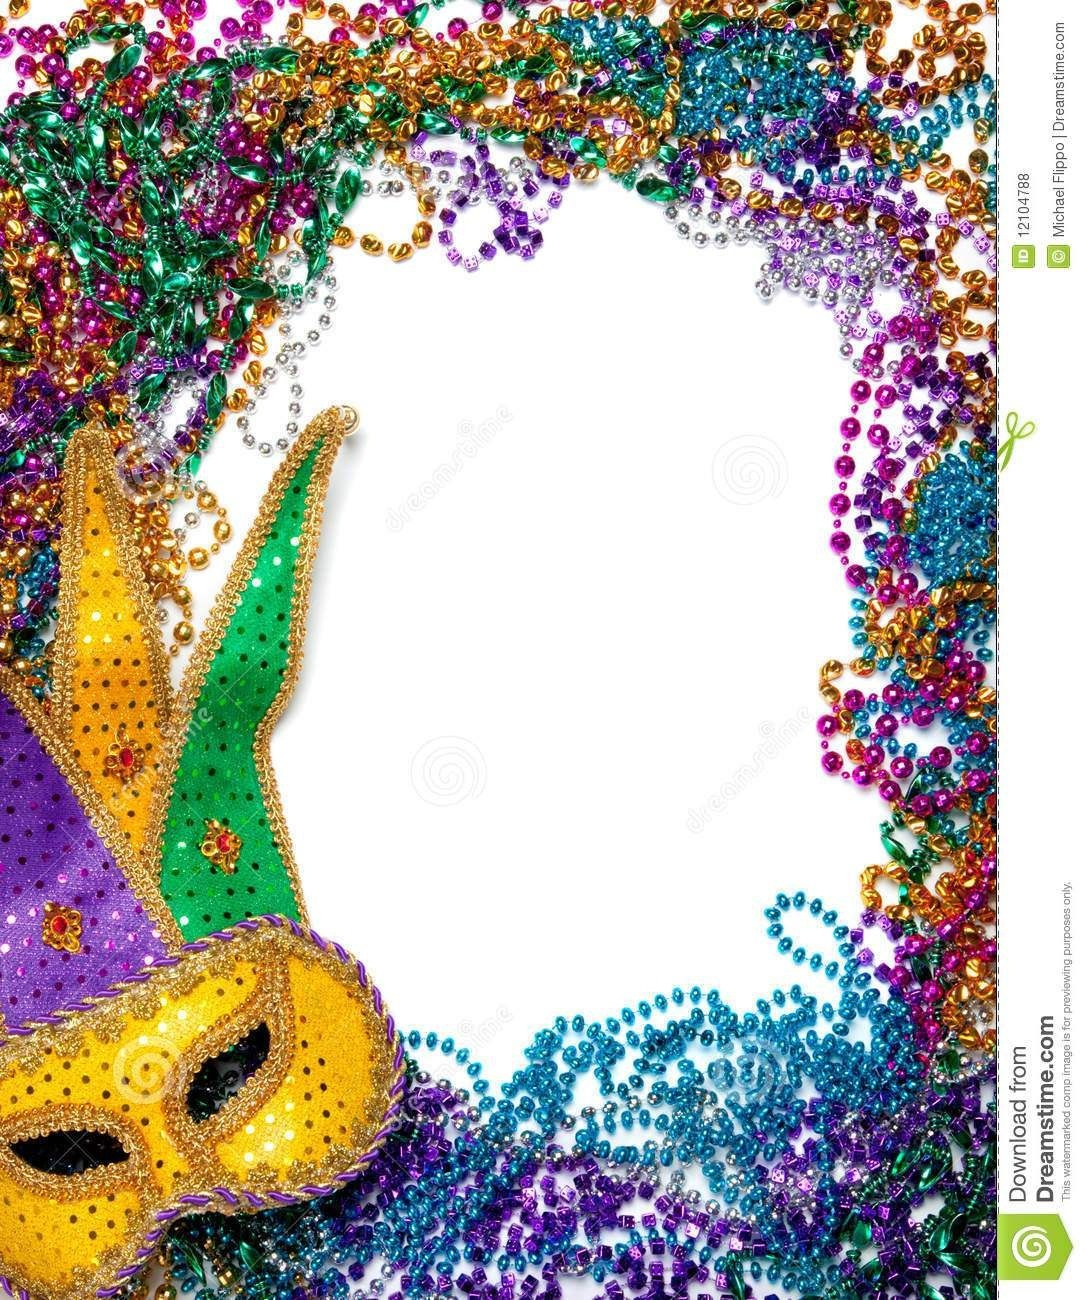 Free Printable Mardi Gras Borders. Royalty Free Stock Photos Border - Free Printable Mardi Gras Invitations